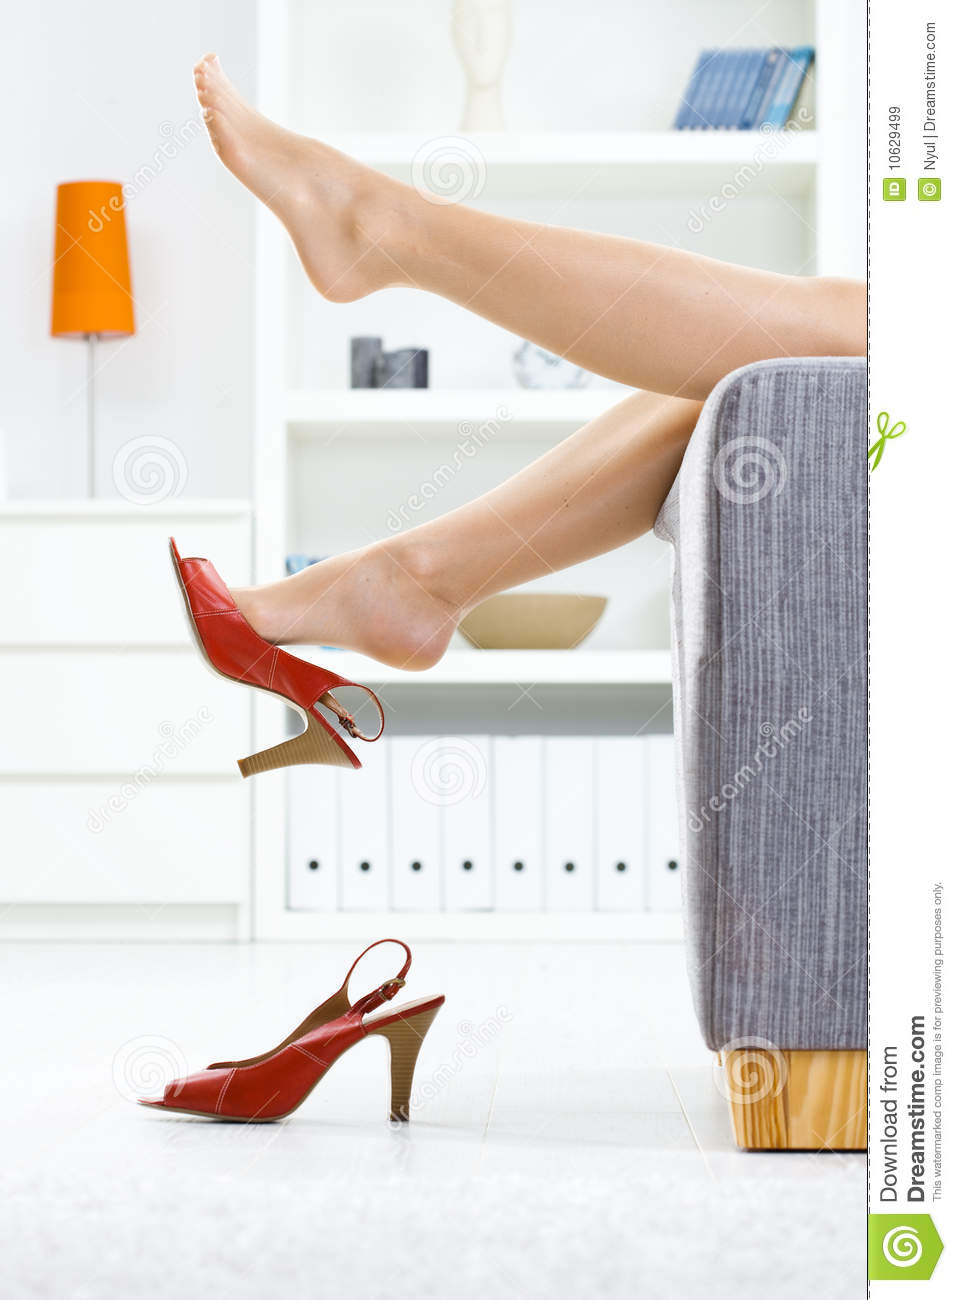 taking off shoes royalty free stock images - image: 10629499